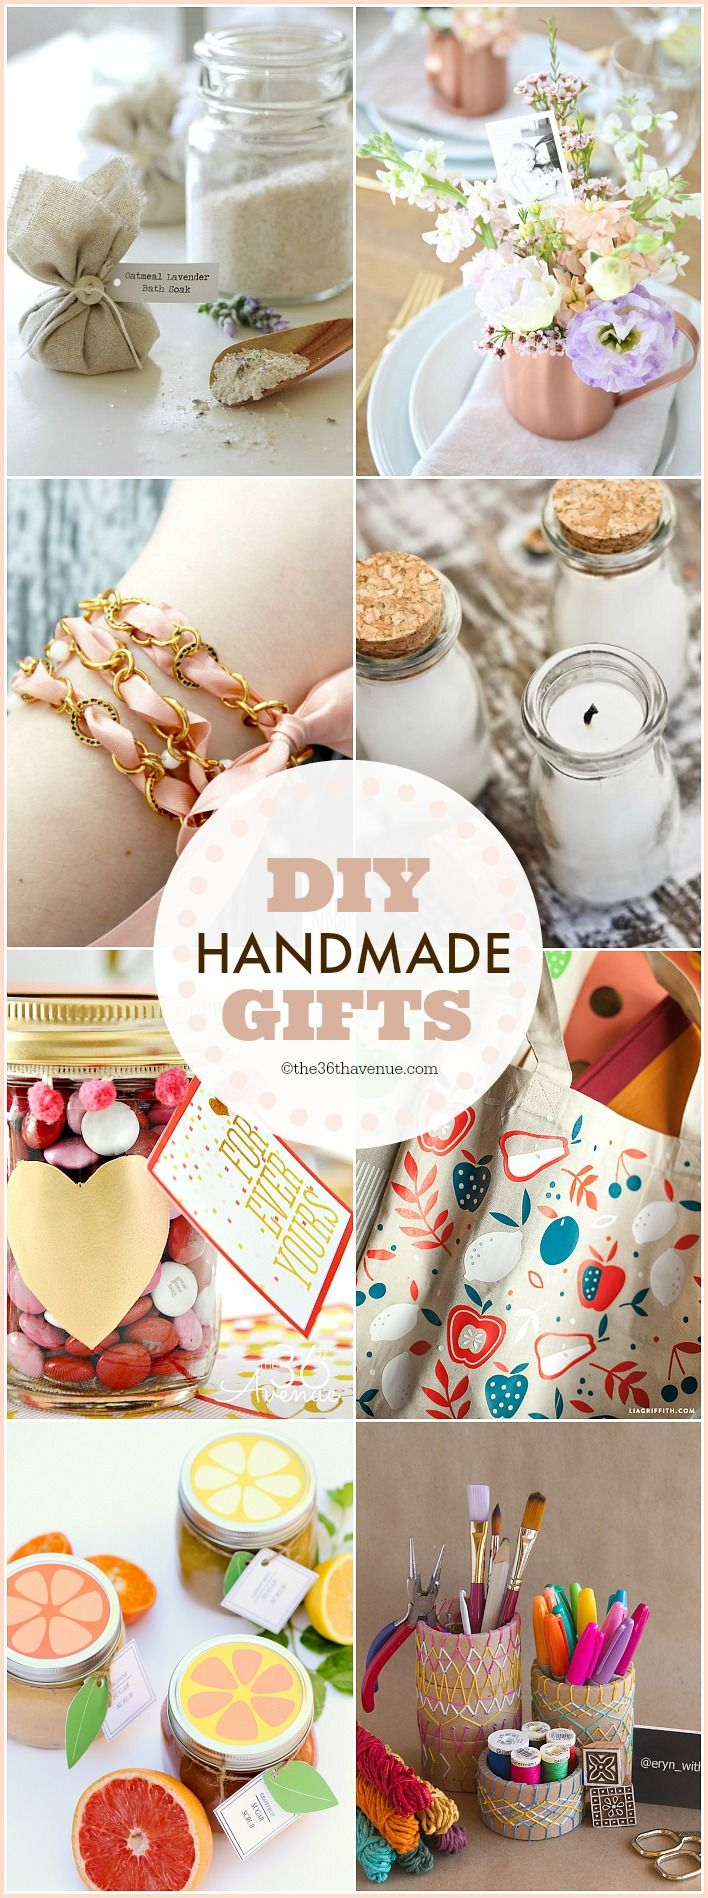 DIY Handmade Gifts for mother's day! Make a homemade mother's day gift. Great teacher gifts too.